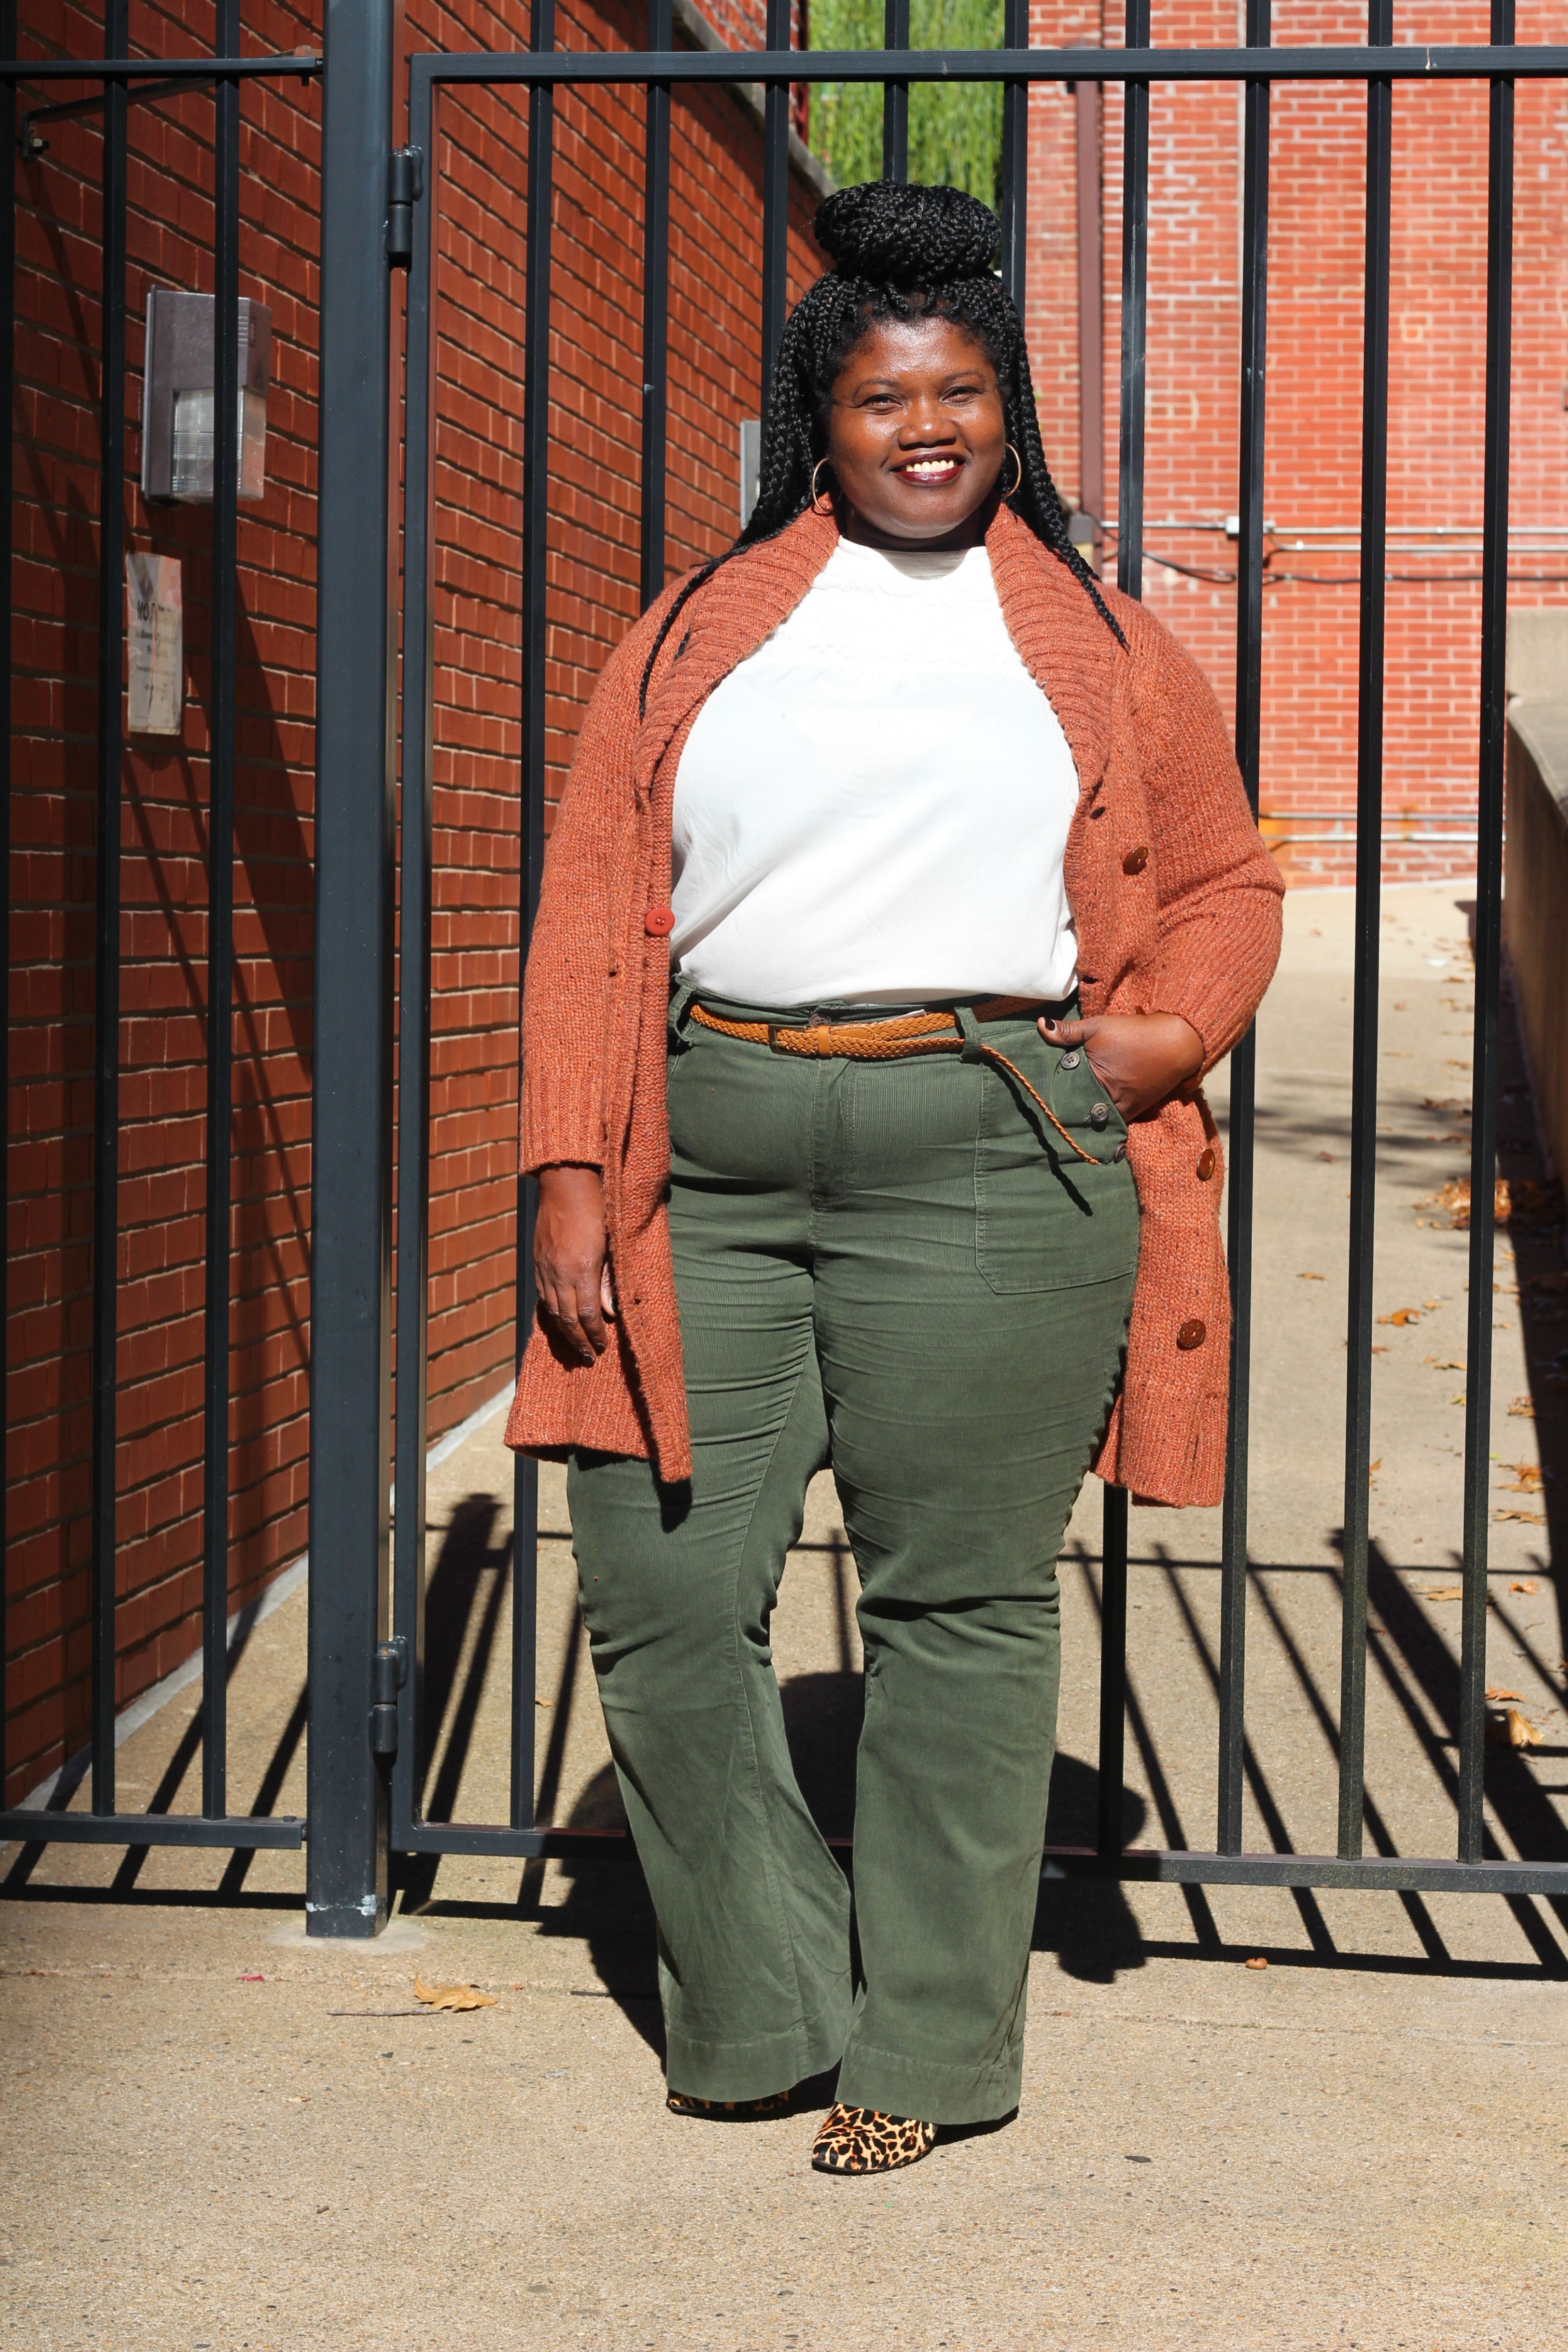 plus size fashion, plus size clothes, cardigans, long cardigans, melissa mccarthy 7, plus size pants, plus size cords, leopard print ankle boots, ankle boots, curvy women, curvy girls, curvy bloggers, curvy blogs, plus size bloggers, plus size bloggers, flare pants, plus size flare pants